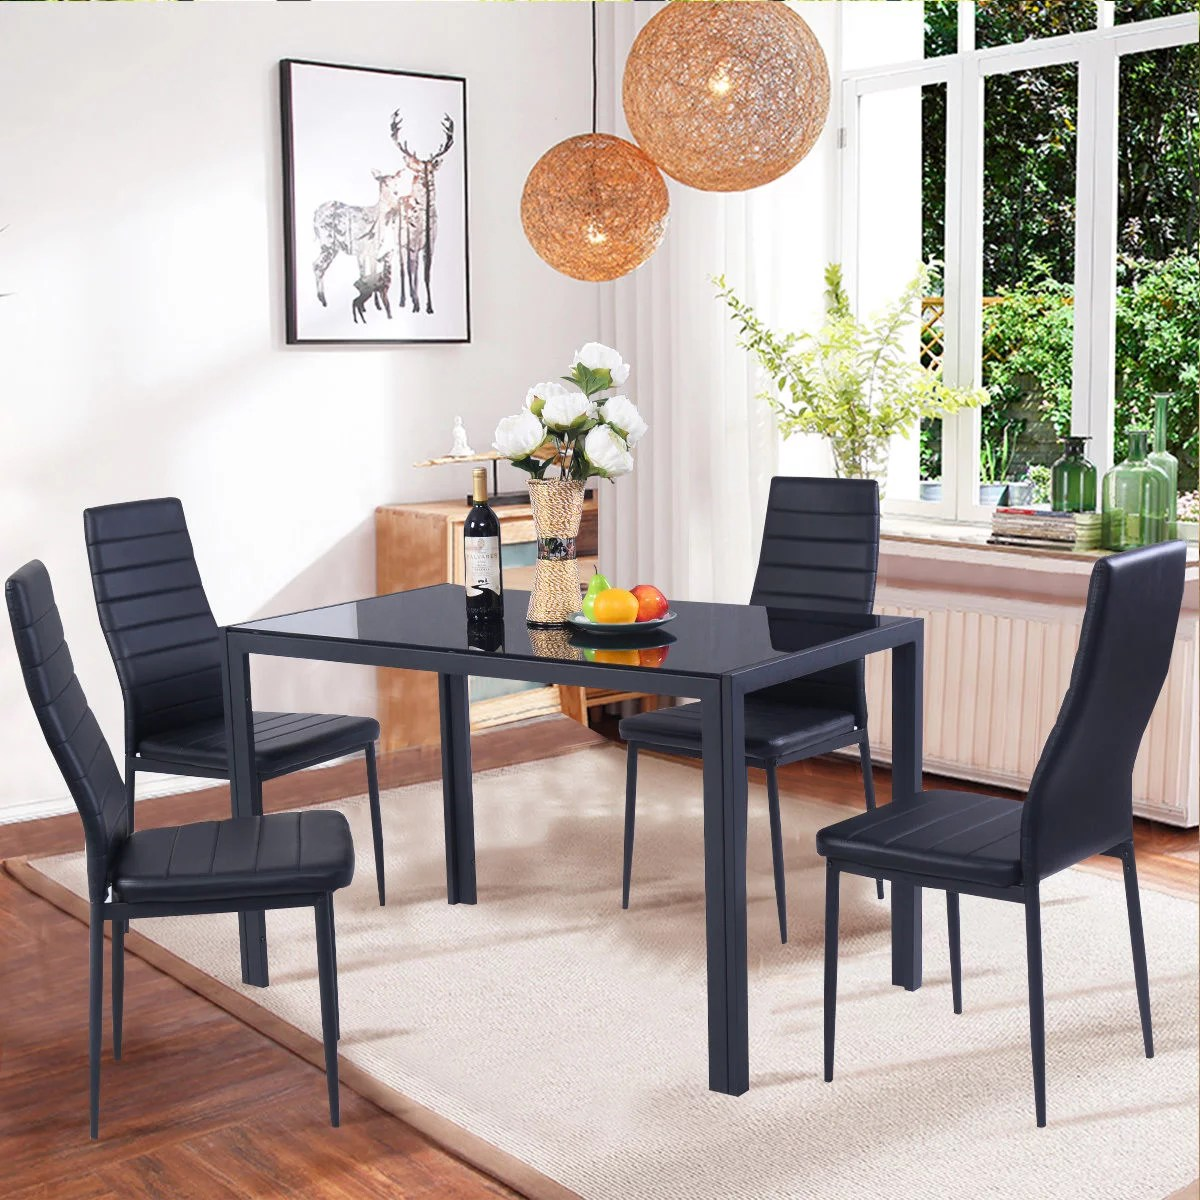 Breakfast Chairs Costway 5 Piece Kitchen Dining Set Glass Metal Table And 4 Chairs Breakfast Furniture